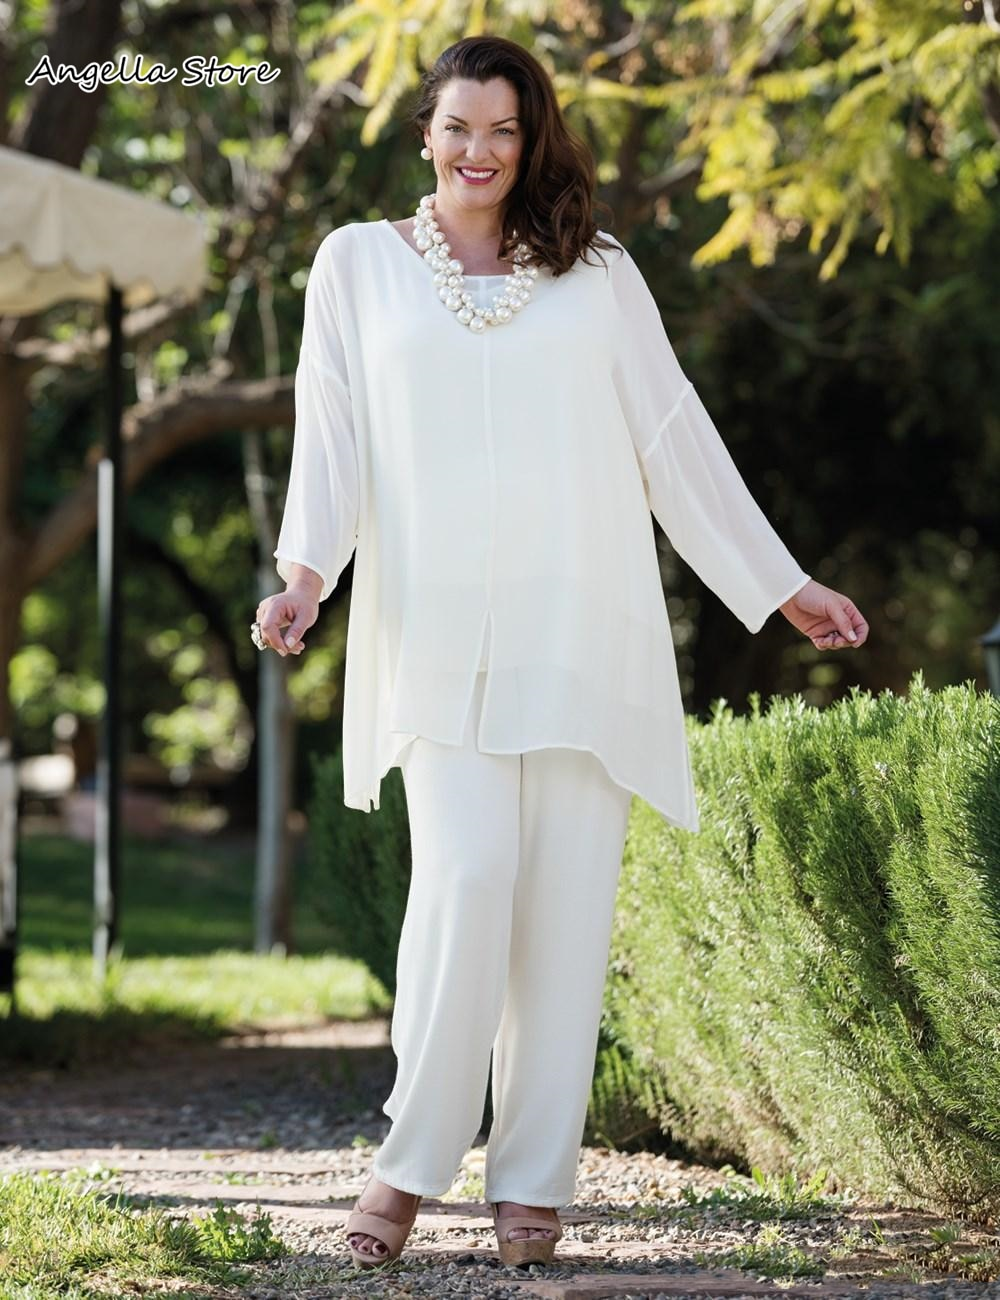 New White Chiffon Mother Of The Bride Pant Suits With Long Sleeves Wedding Guest Dress Plus Size Mom